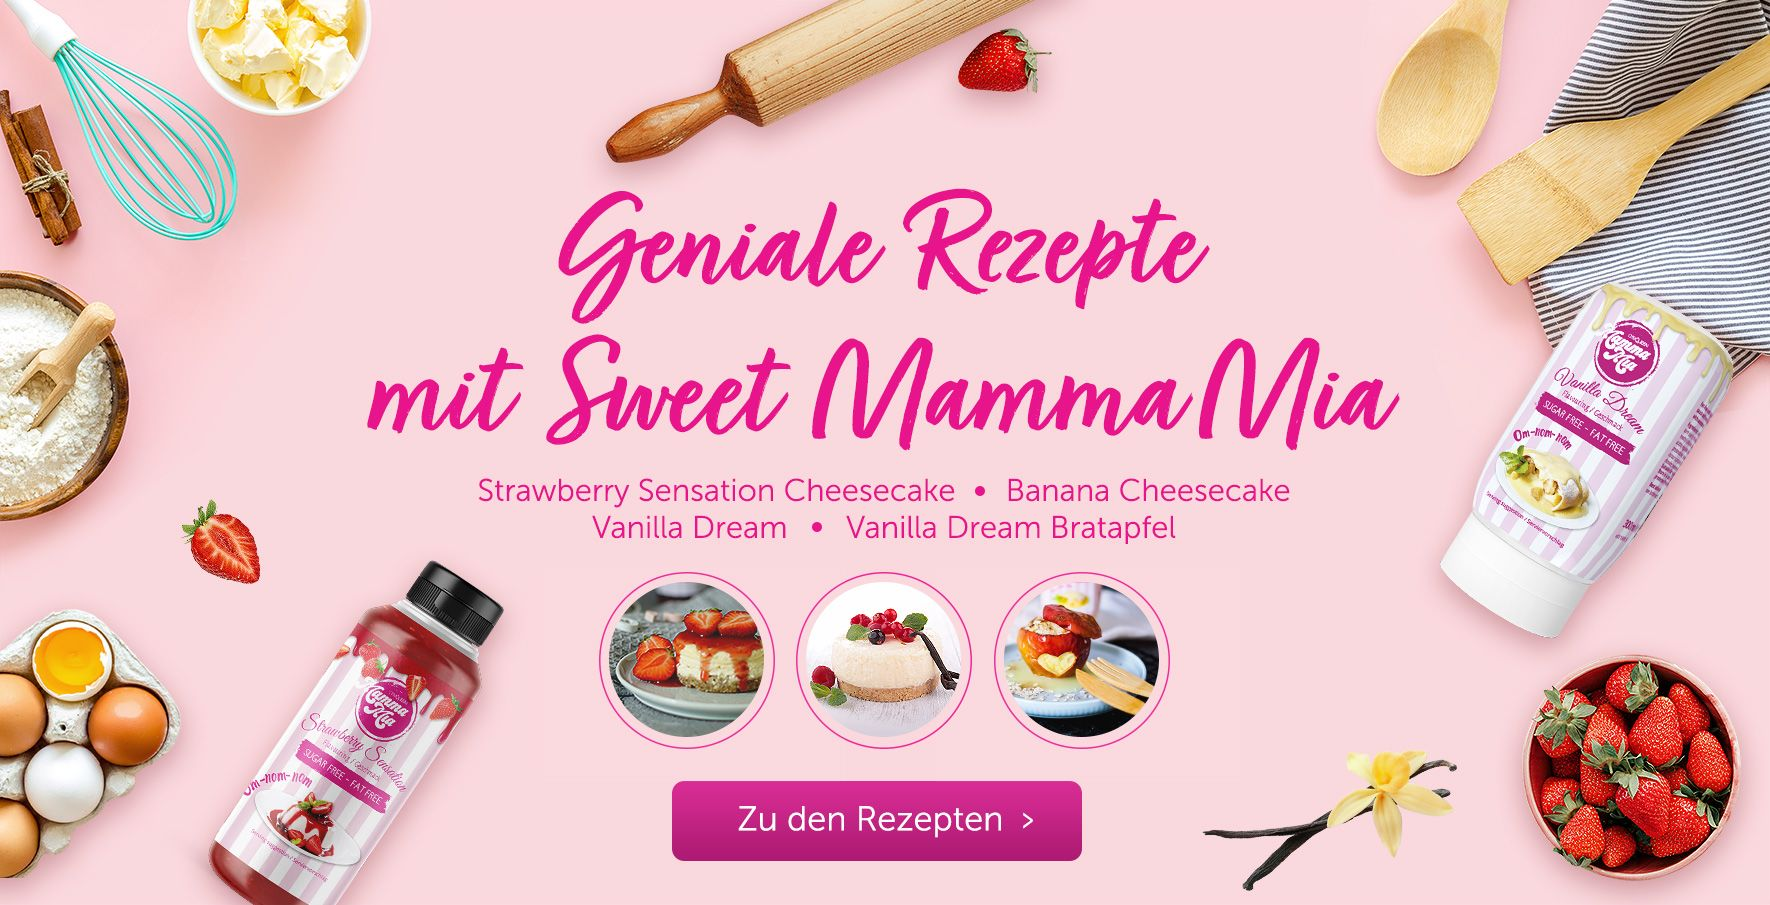 Geniale Sweet Mamma Mia Rezepte: Strawberry Sensation Cheescake, Banana Cheescake Vanilla Dream & Vanilla Dream Bratapfel! Unbedingt ausprobieren!